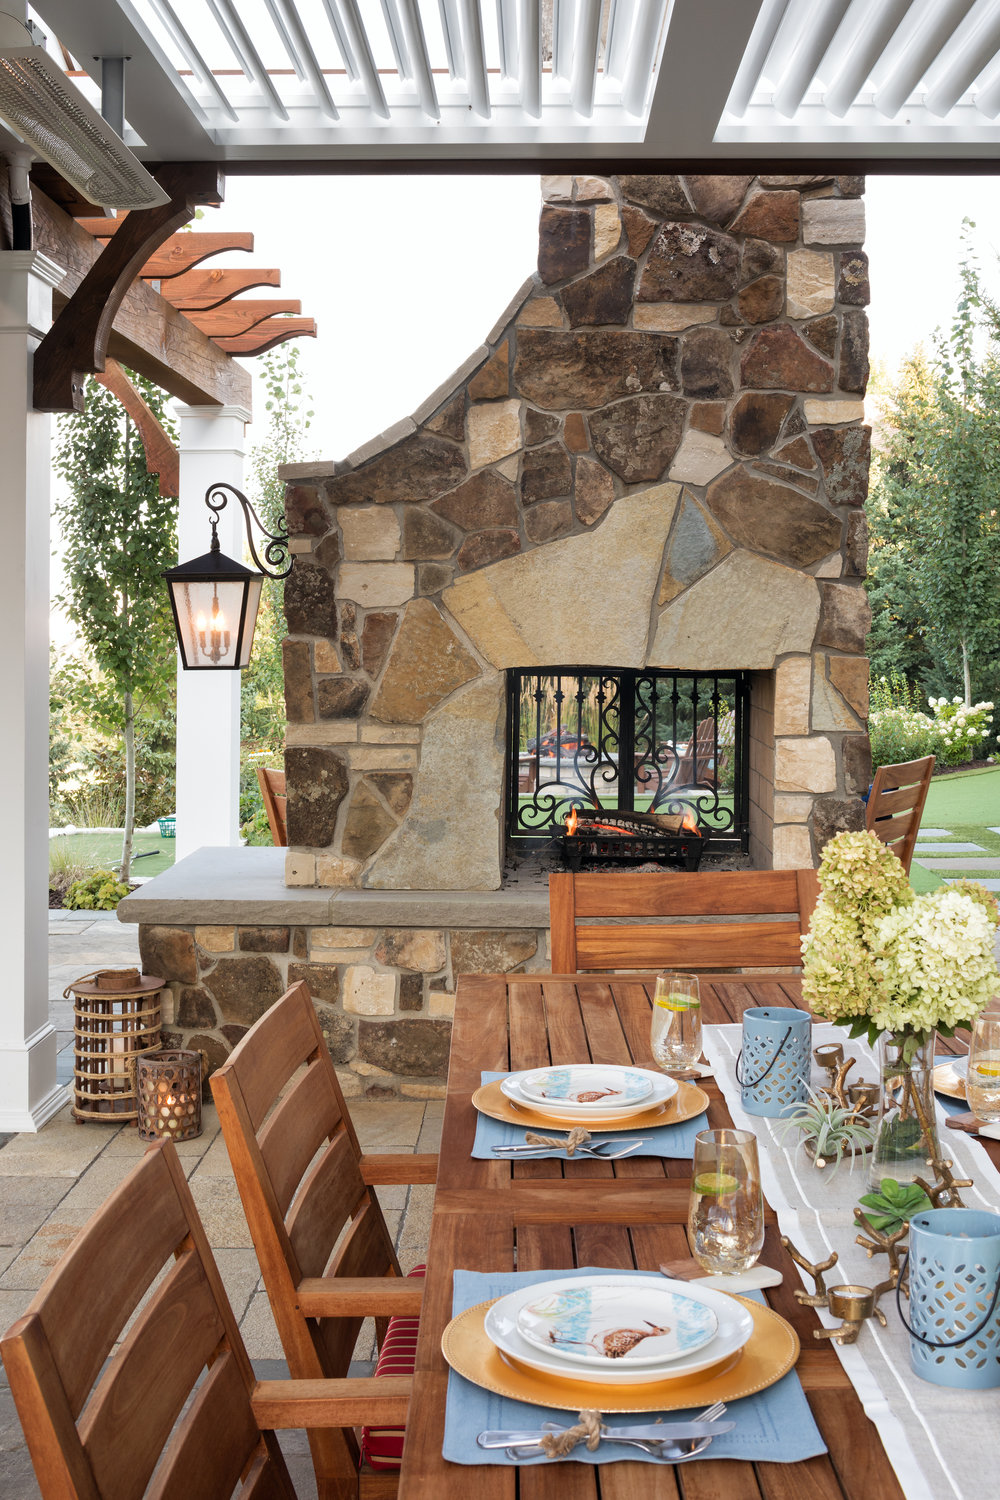 Mom's Design Build - Outdoor Dining Table Fire Place